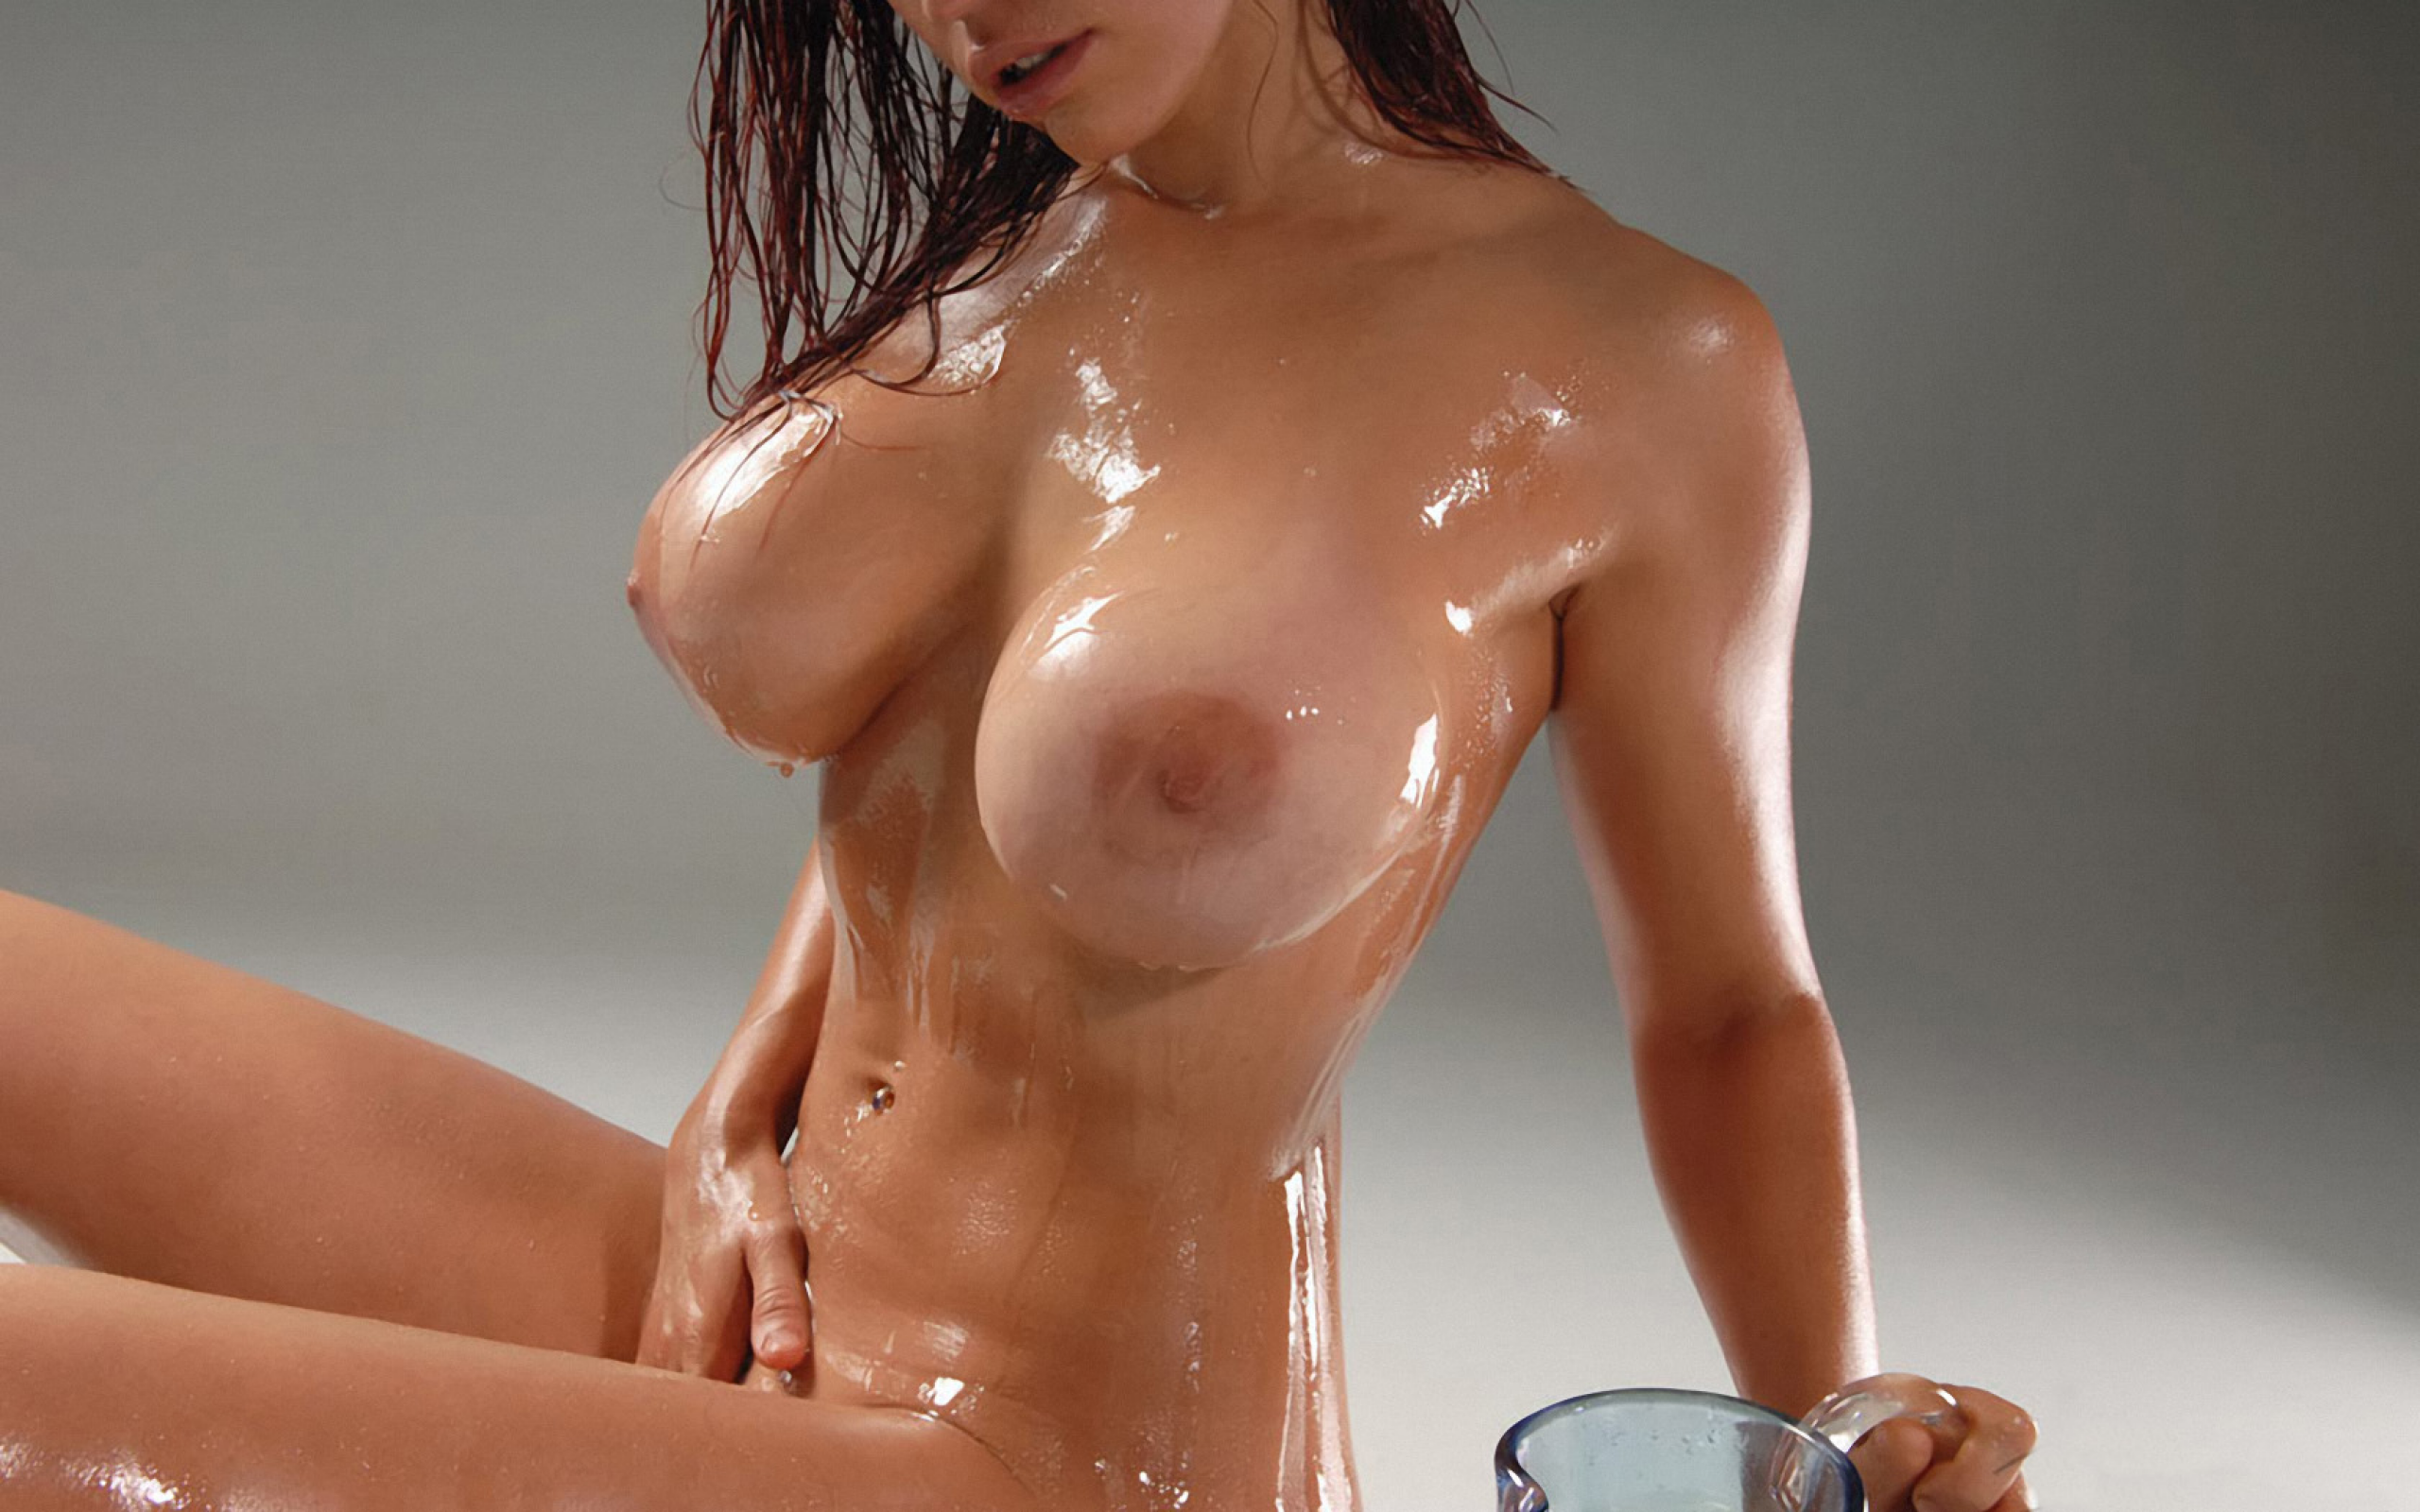 Download 2560X1600 Boobs, Nude, Oiled, Bianca Beauchamp -3867